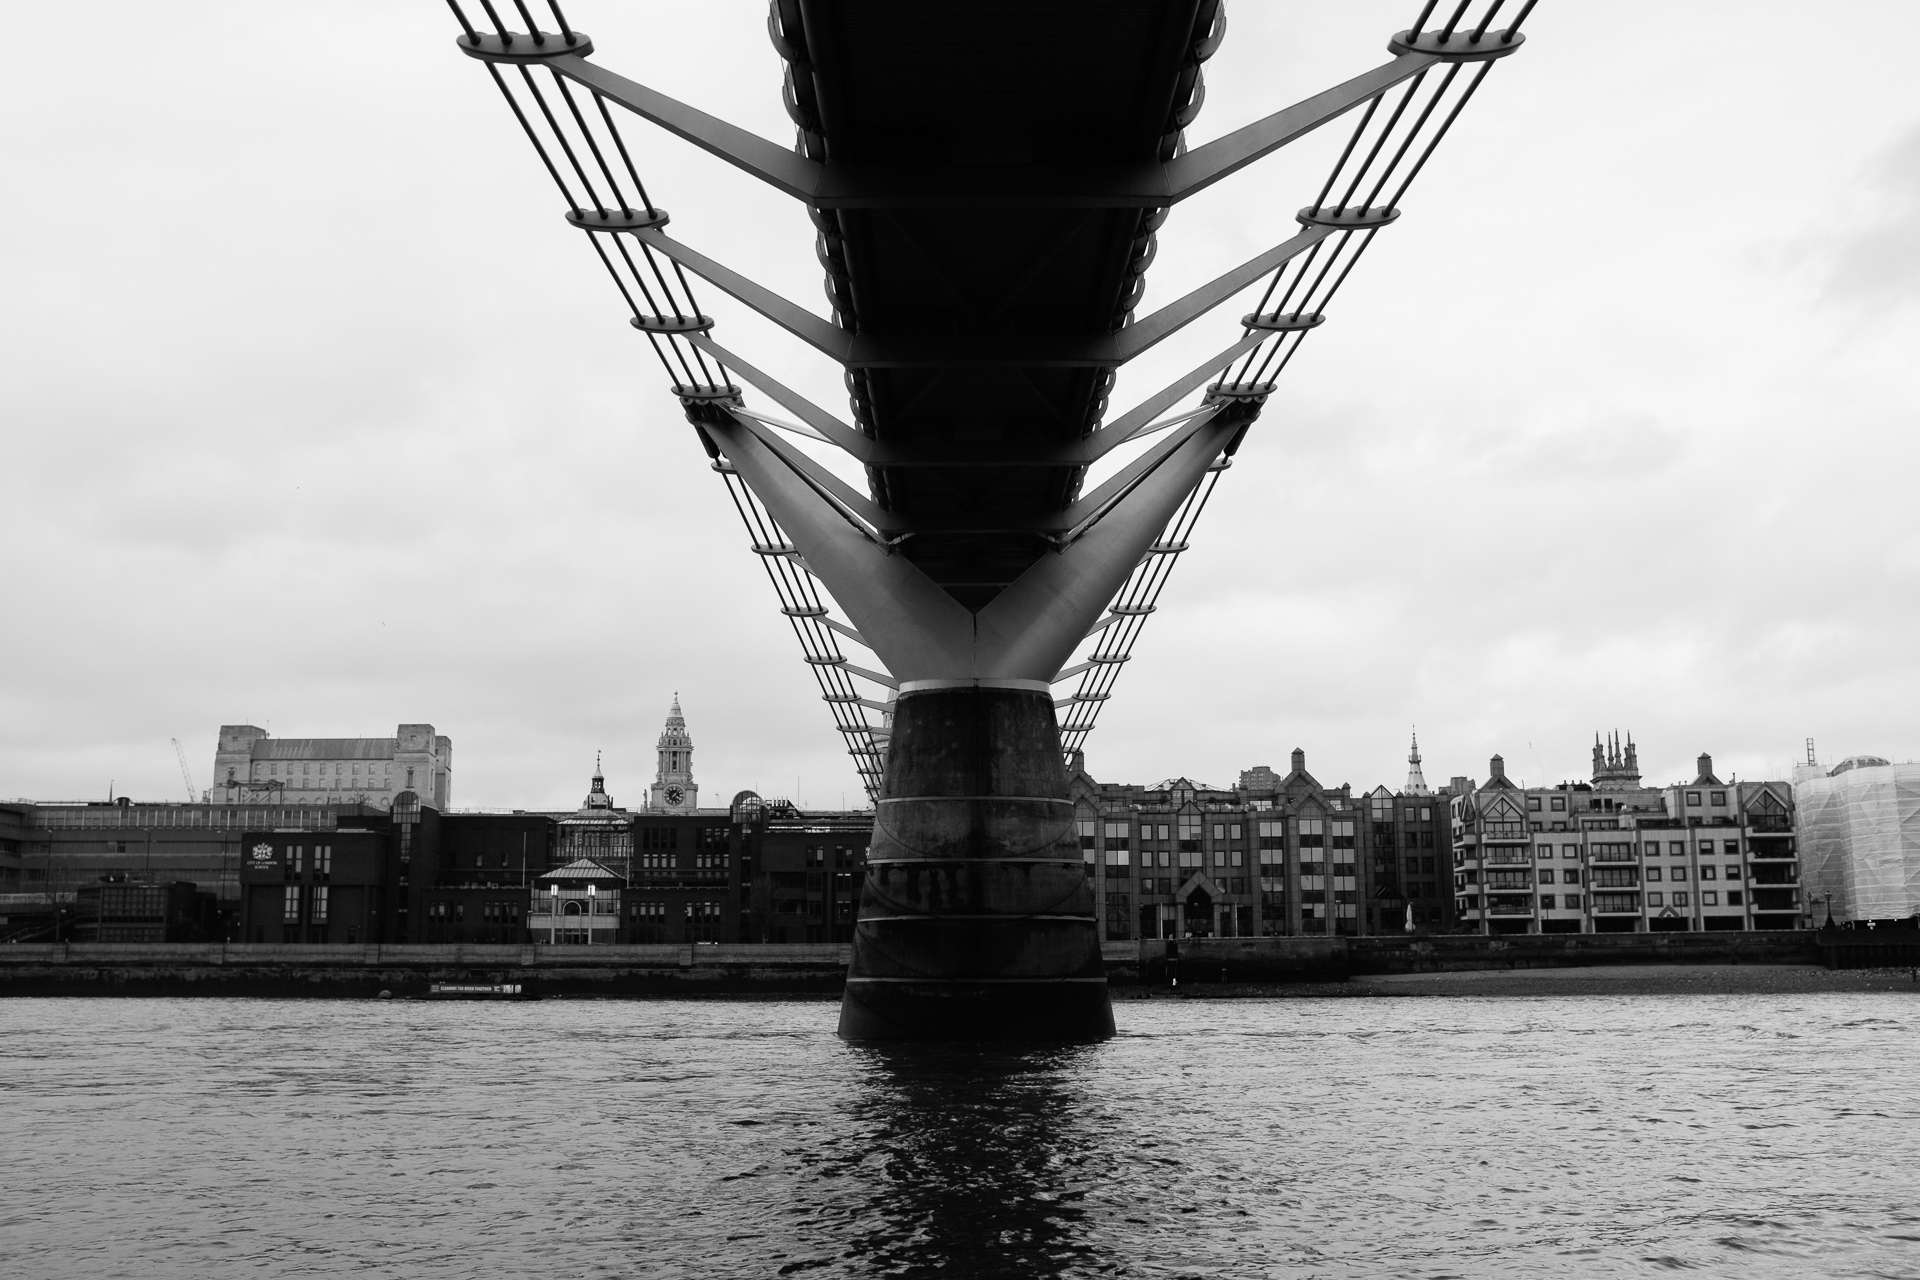 millenium bridge London from the level of water during a low tide